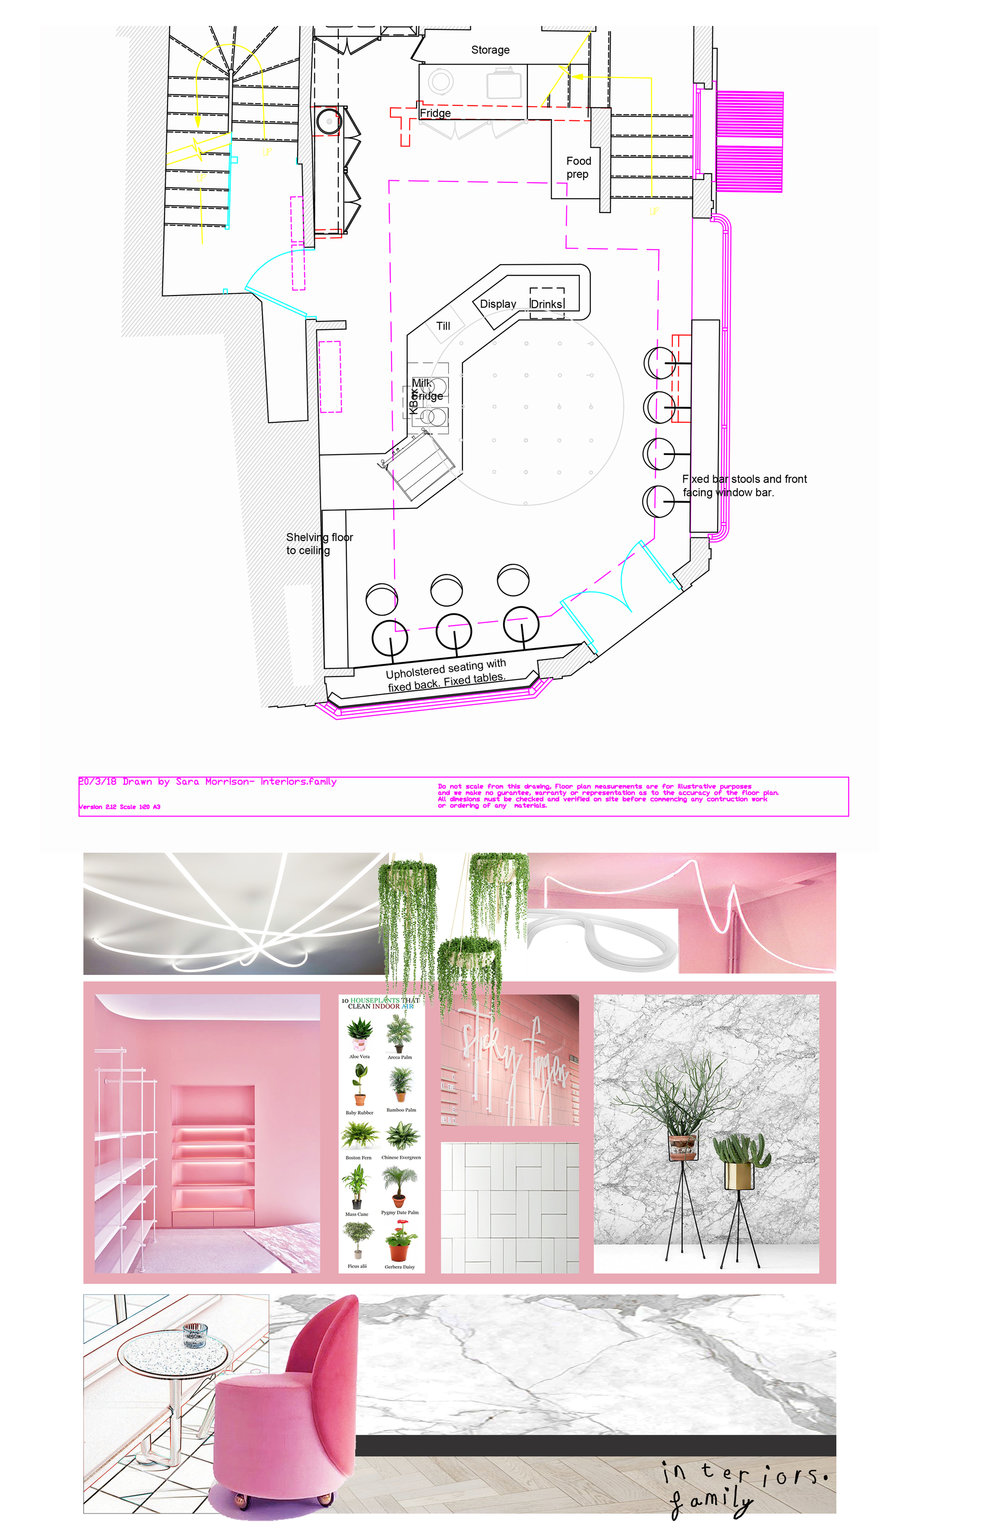 Good Day Cafe - Bath, layout and design. Click on the image to see more.